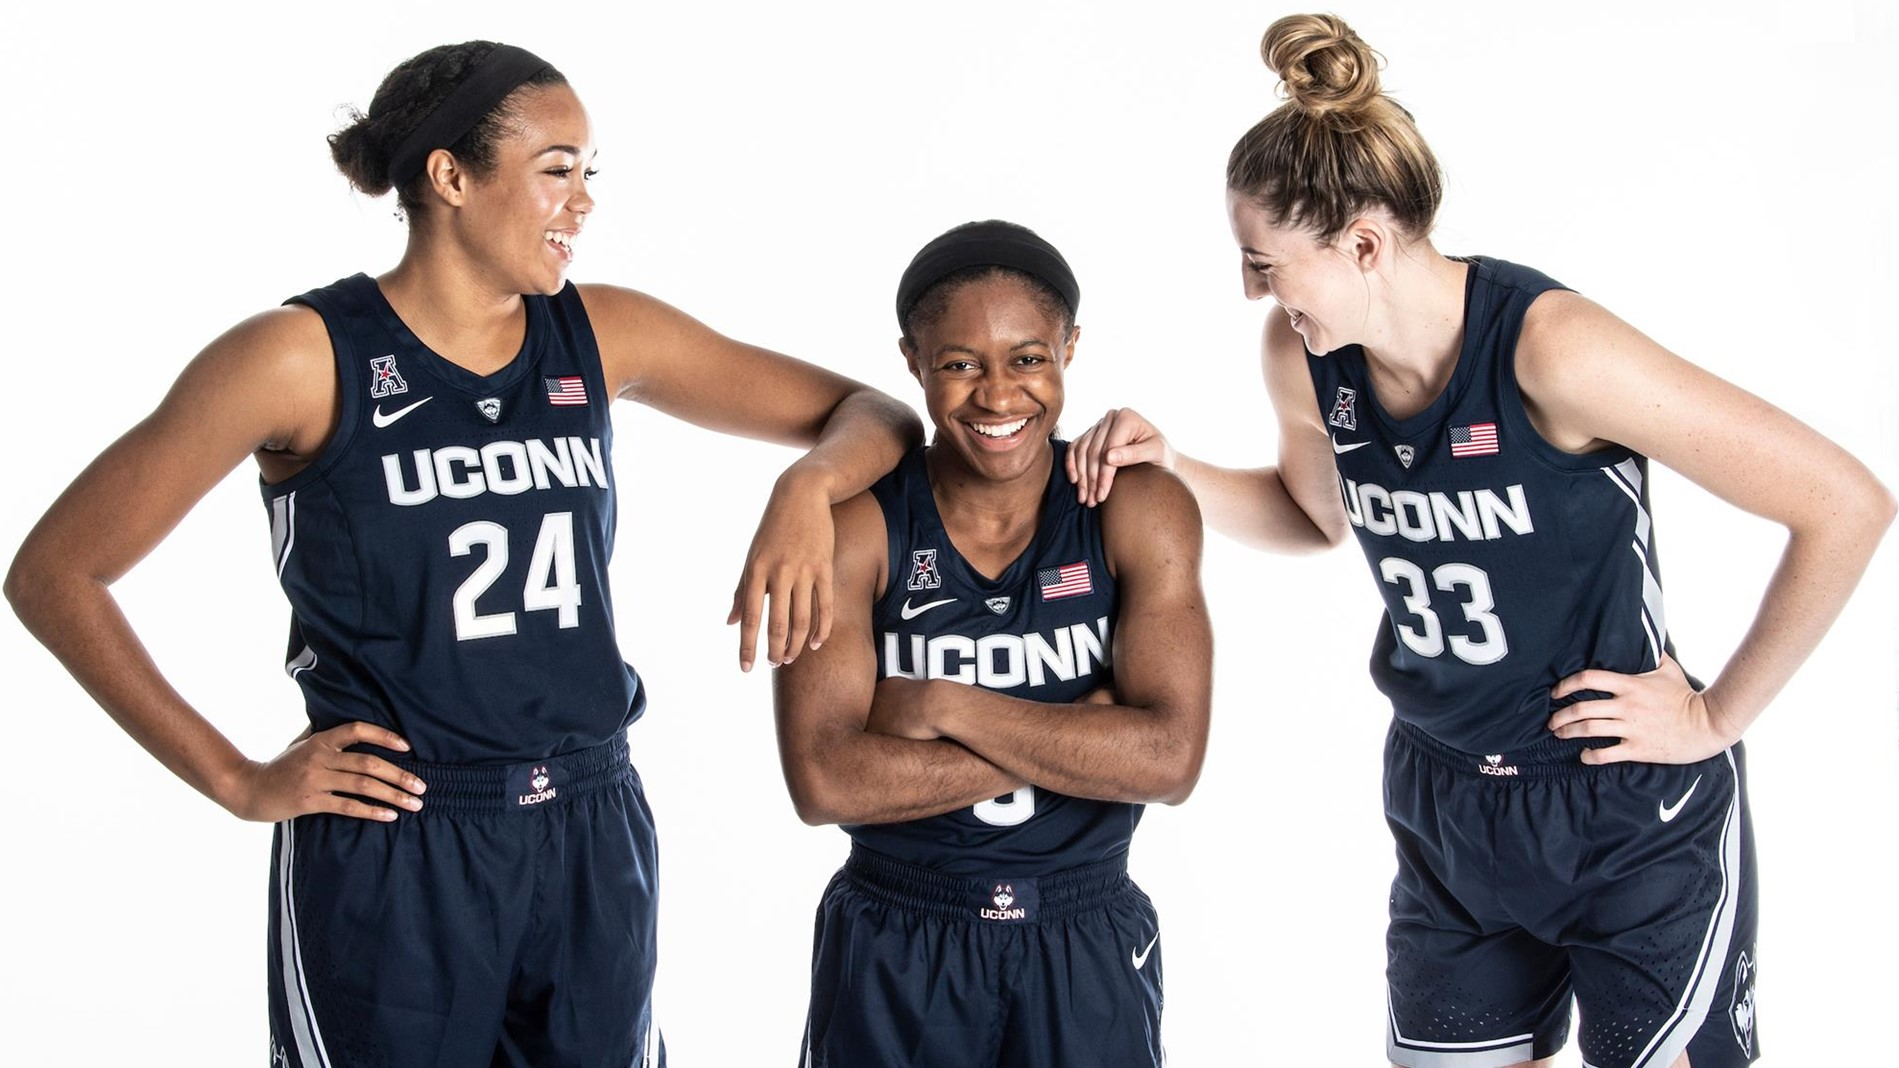 reputable site 02d28 f0895 UConn Trio Named to Wooden Midseason Top 25 - University of ...